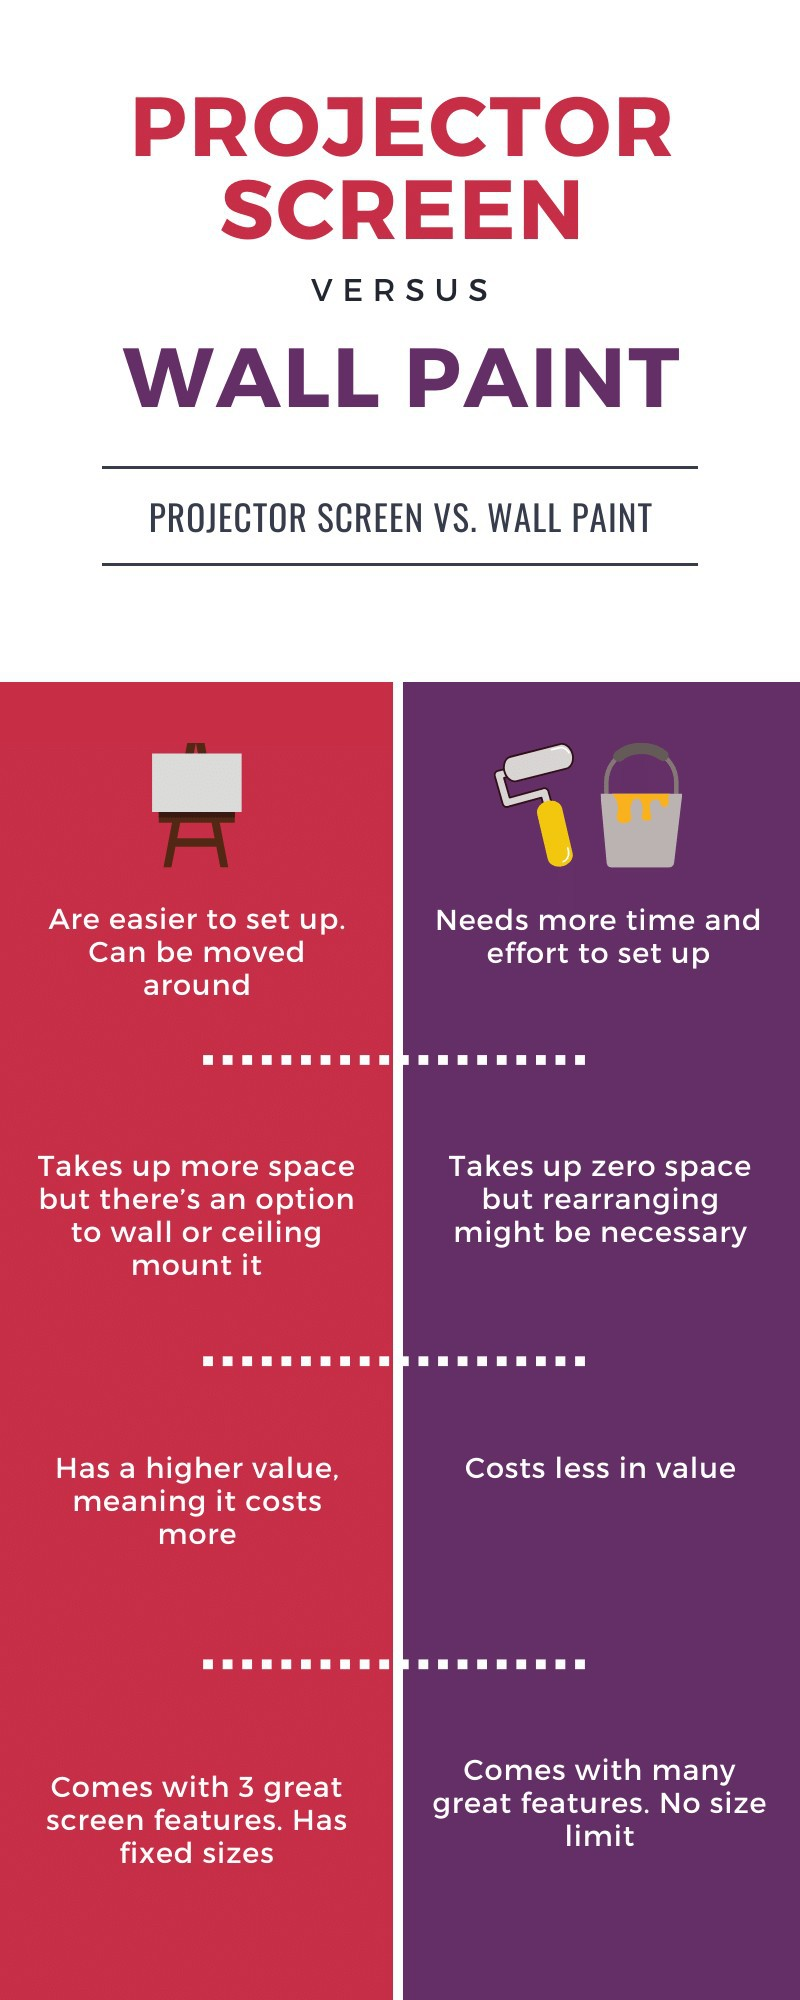 projector screen vs wall paint infographic